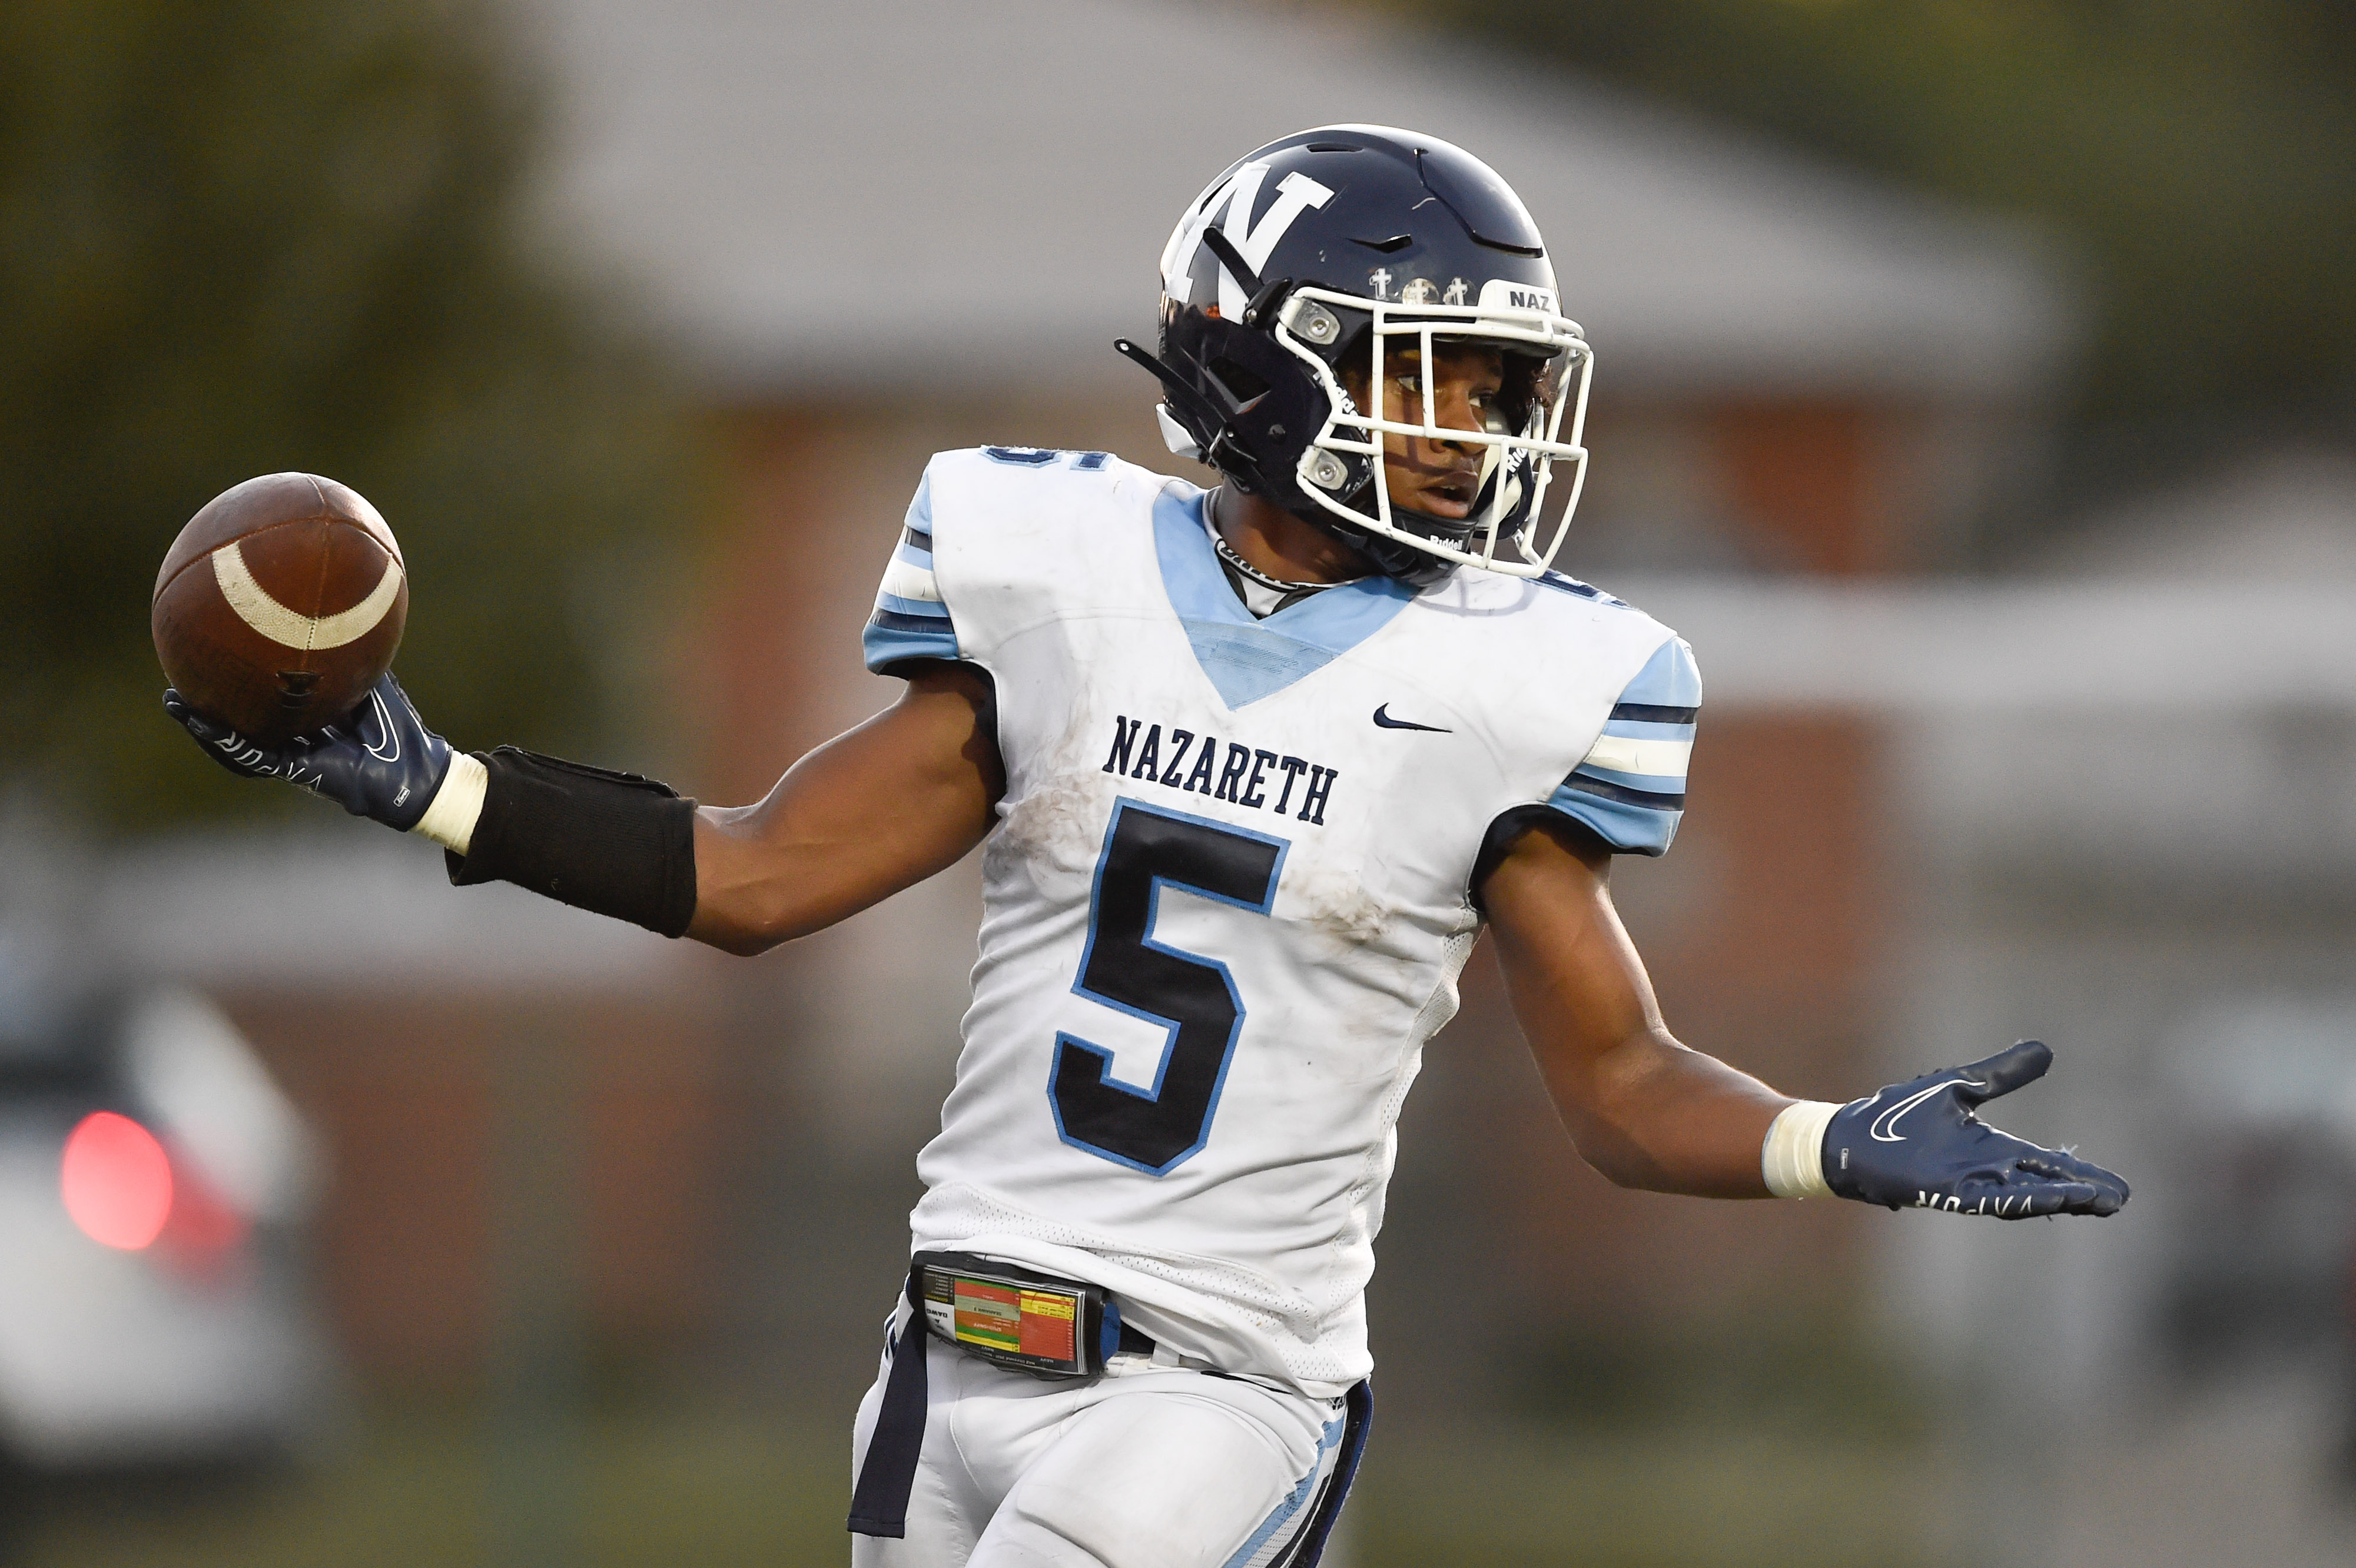 Nazareth's Kaleb Miller (5) reacts after scoring a touchdown against Notre Dame.